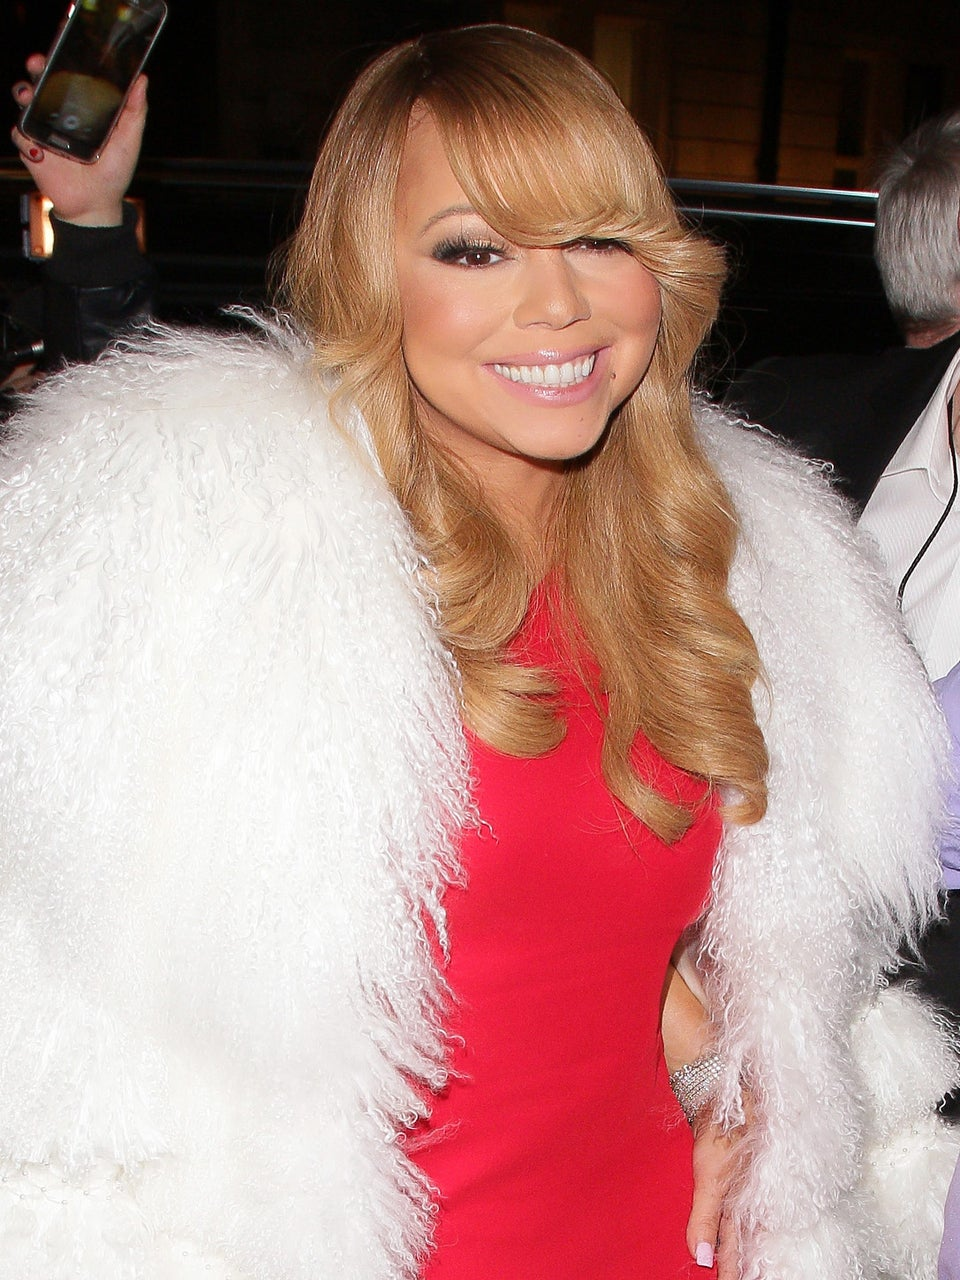 Mariah Carey's Luxurious Aspen Airbnb Rental Is All We Want For Christmas